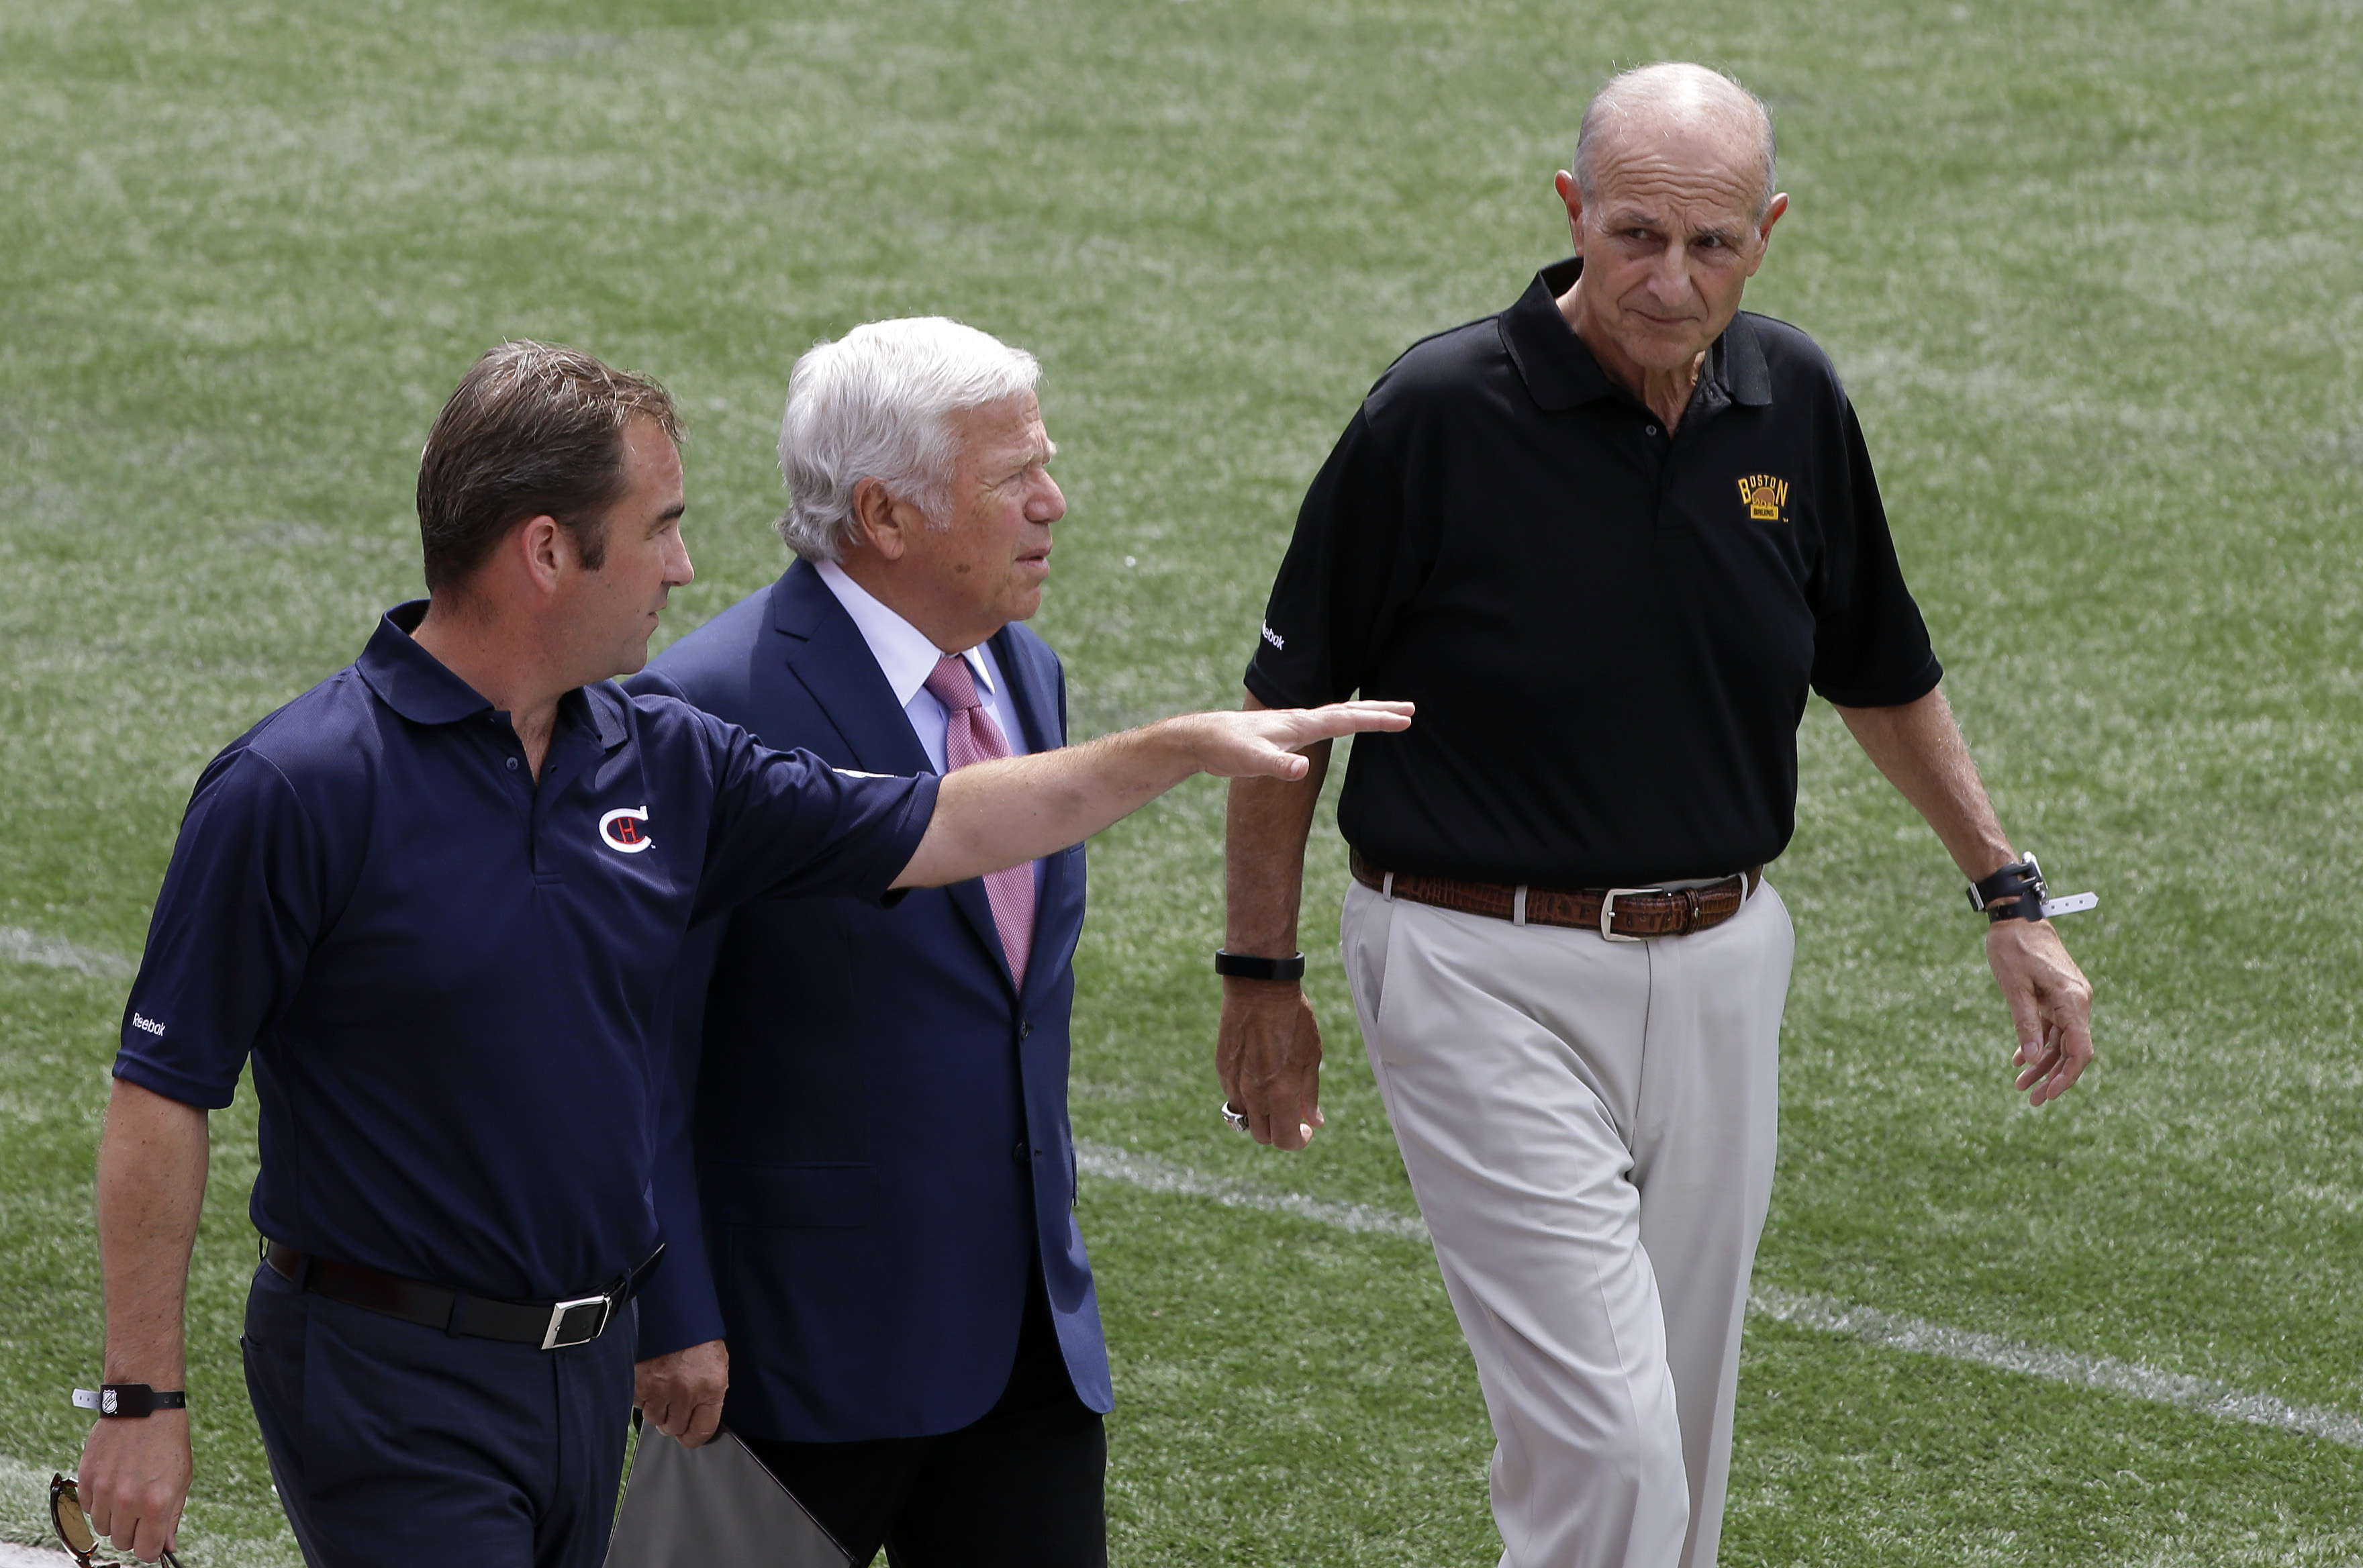 Montreal Canadiens owner Geoff Molson, left, walks on the field at Gillette Stadium with New England Patriots owner Robert Kraft, center, and Boston Bruins owner Jeremy Jacobs during an event Wednesday, July 29, 2015, in Foxborough, Mass., to promote the